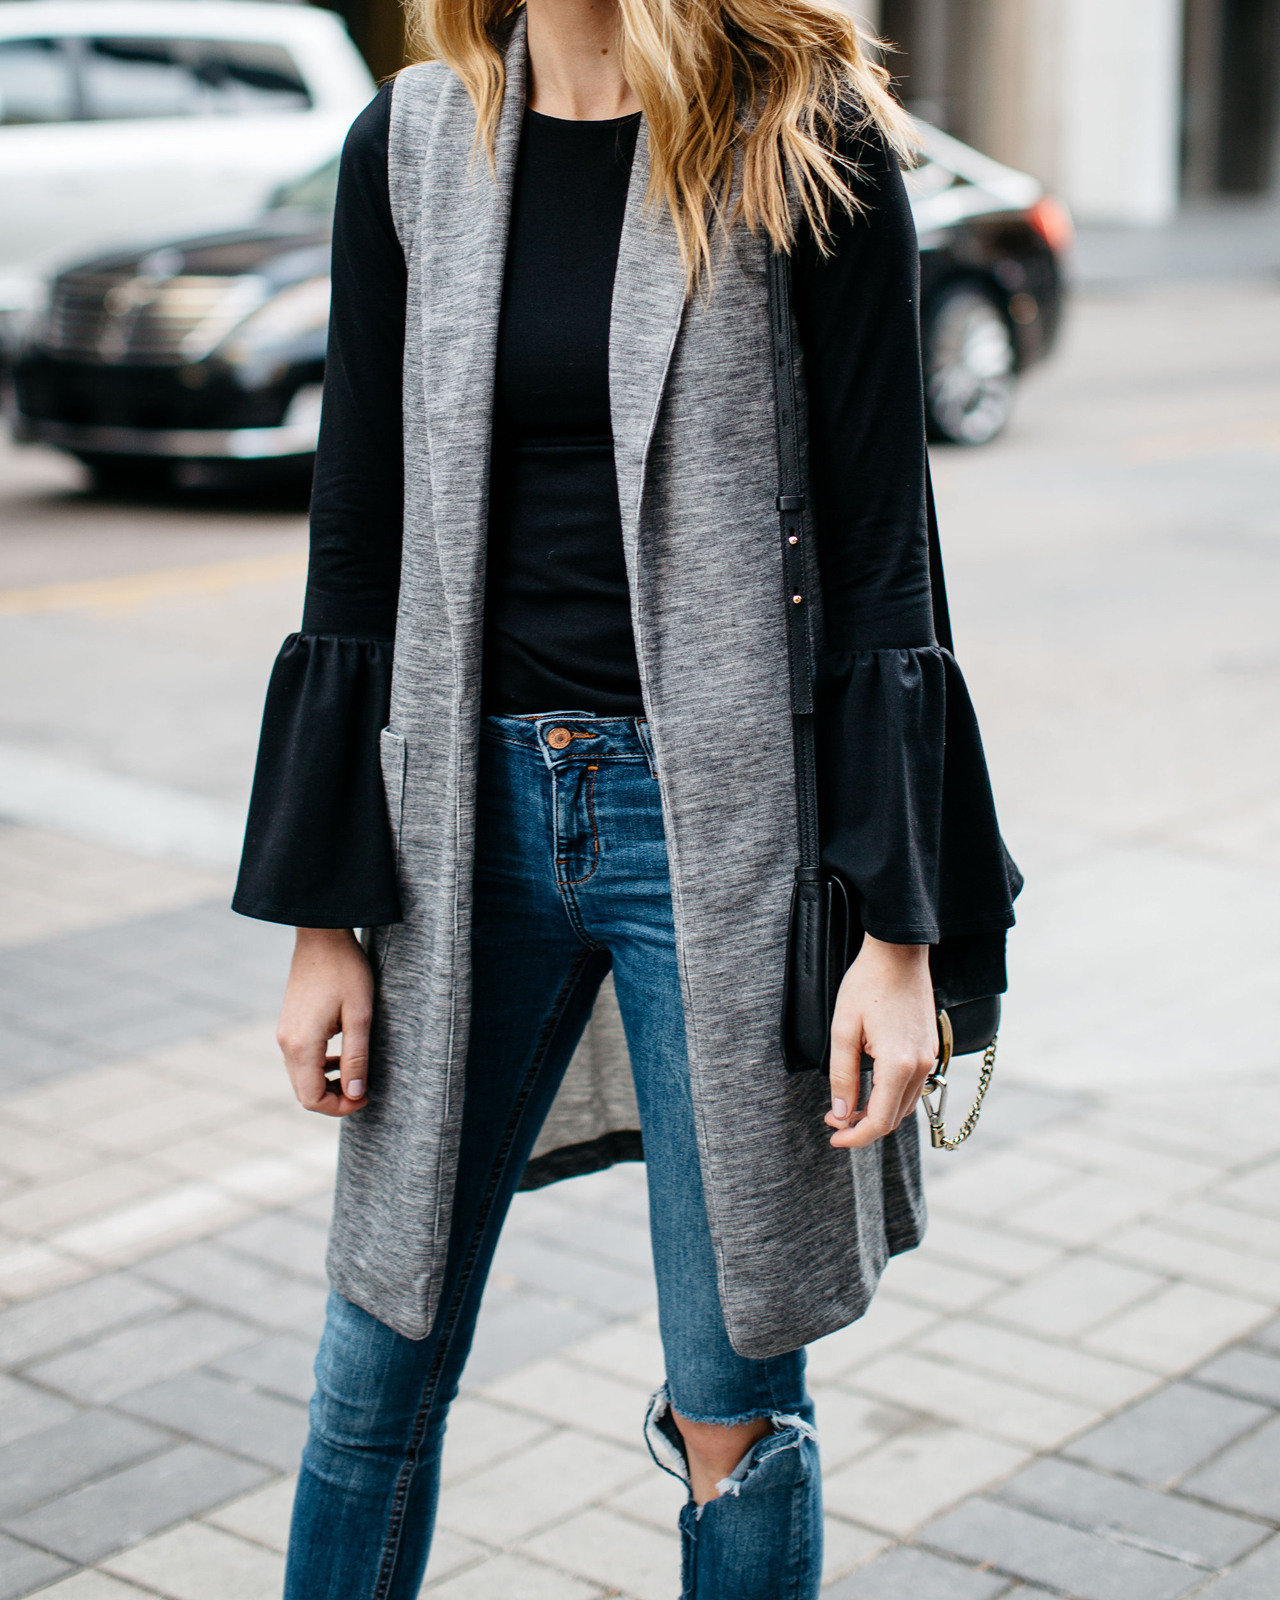 Fall Outfit, Winter Outfit, Long Grey Vest, Black Bell Sleeve Top, Chloe Faye Handbag, Denim Ripped Skinny Jeans